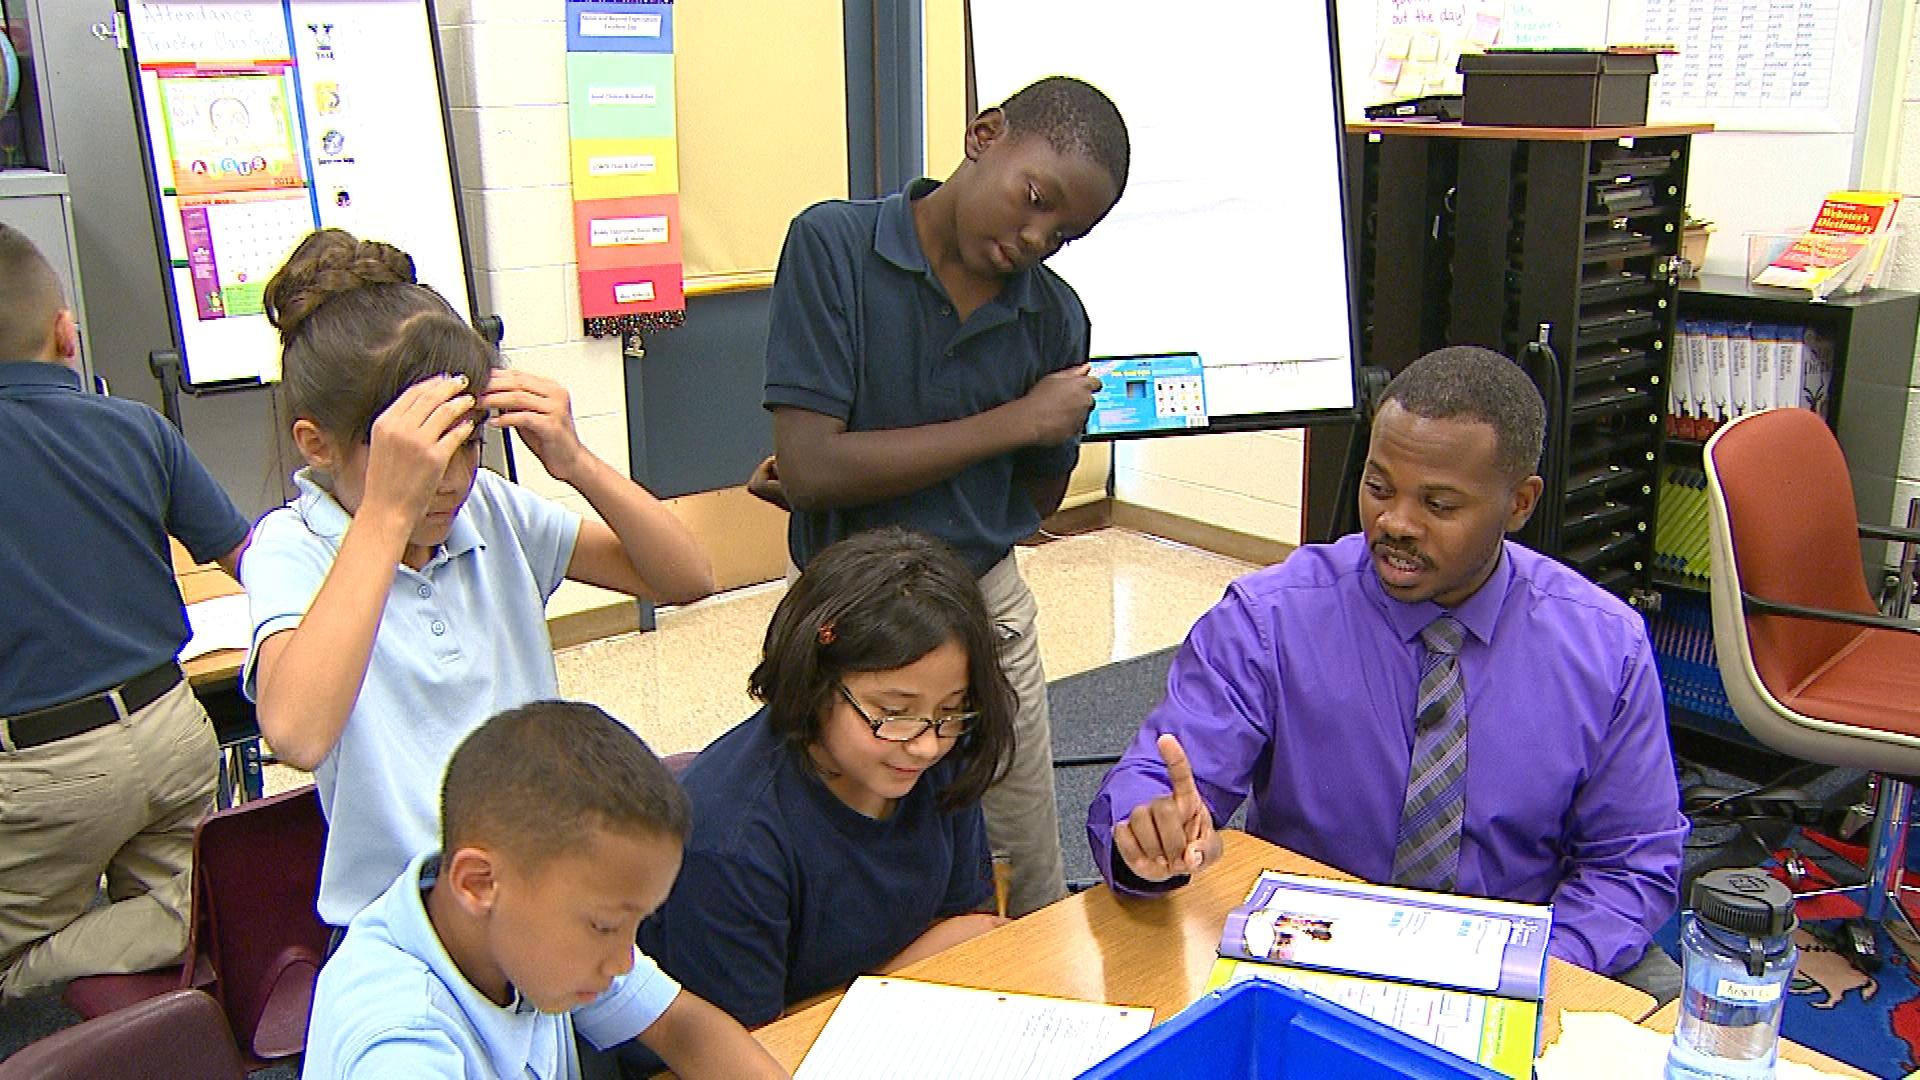 Matt Johnson helping his students at McGlone Elementary (credit: CBS)